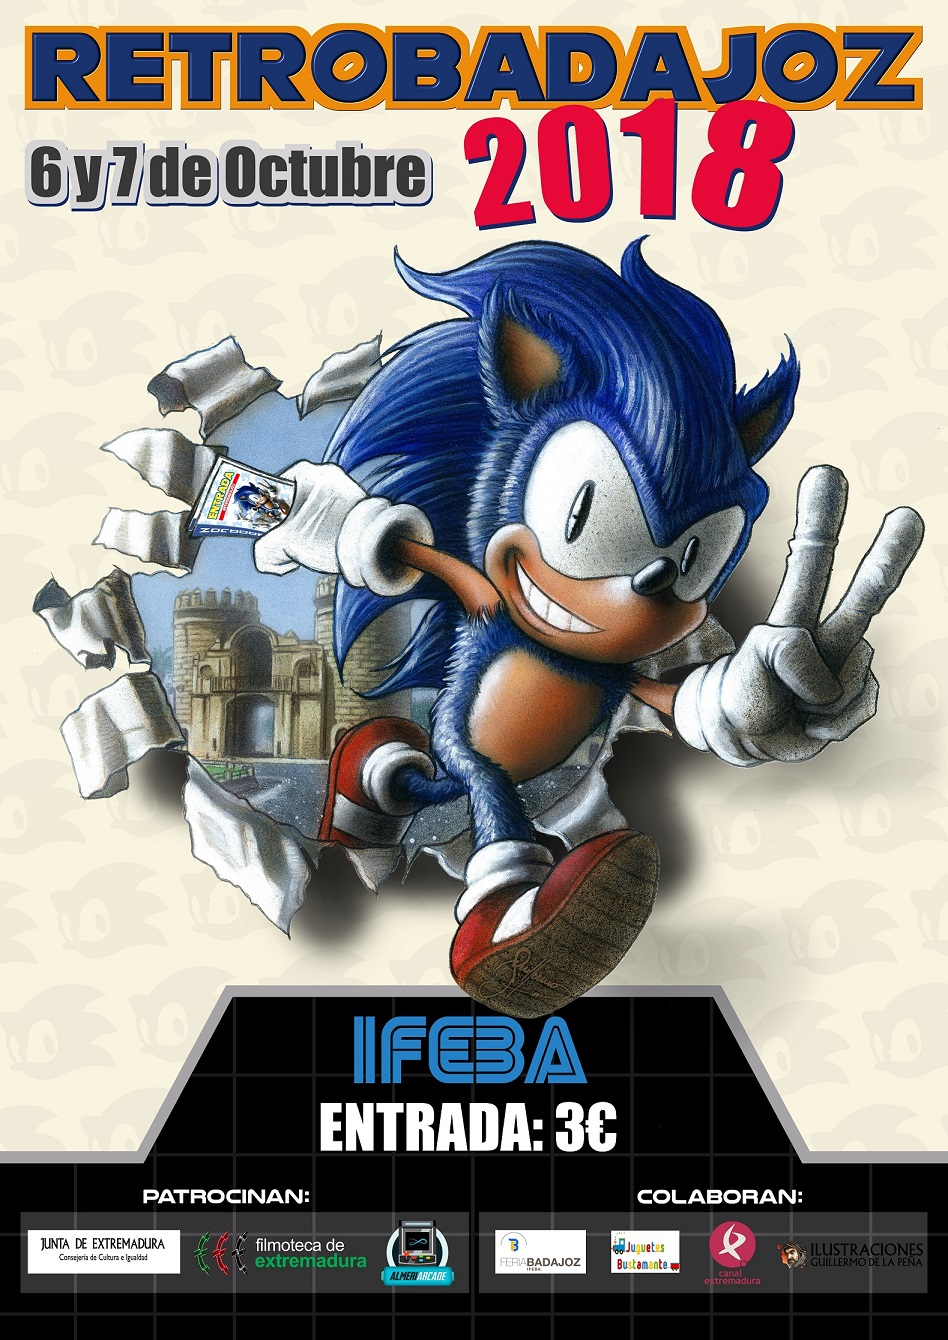 Retrobadajoz 2018 Cartel10